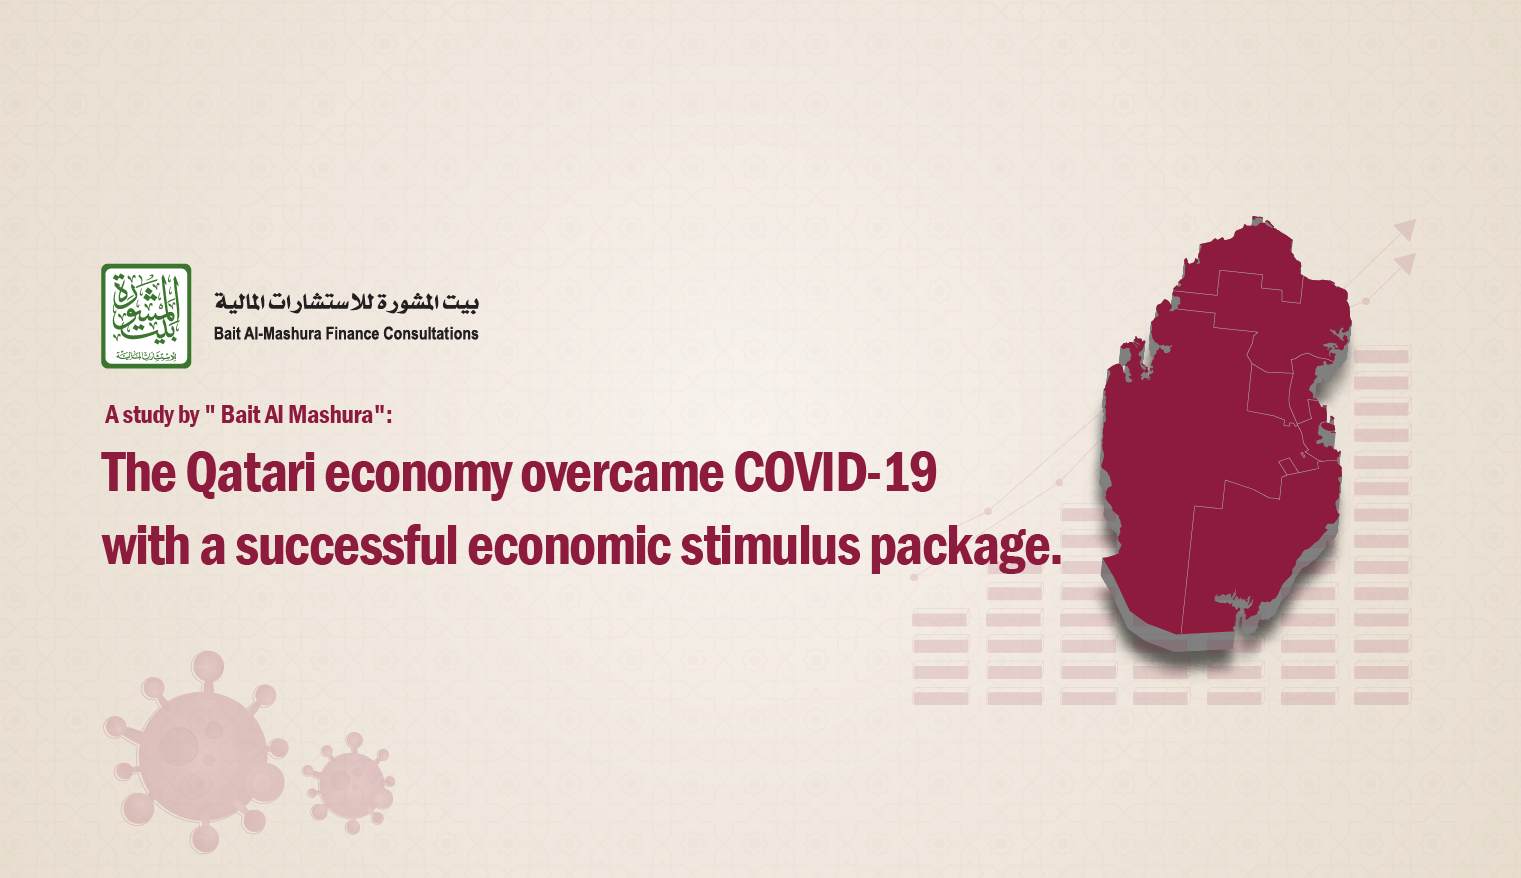 The Qatari economy overcame COVID-19 with a successful economic stimulus package